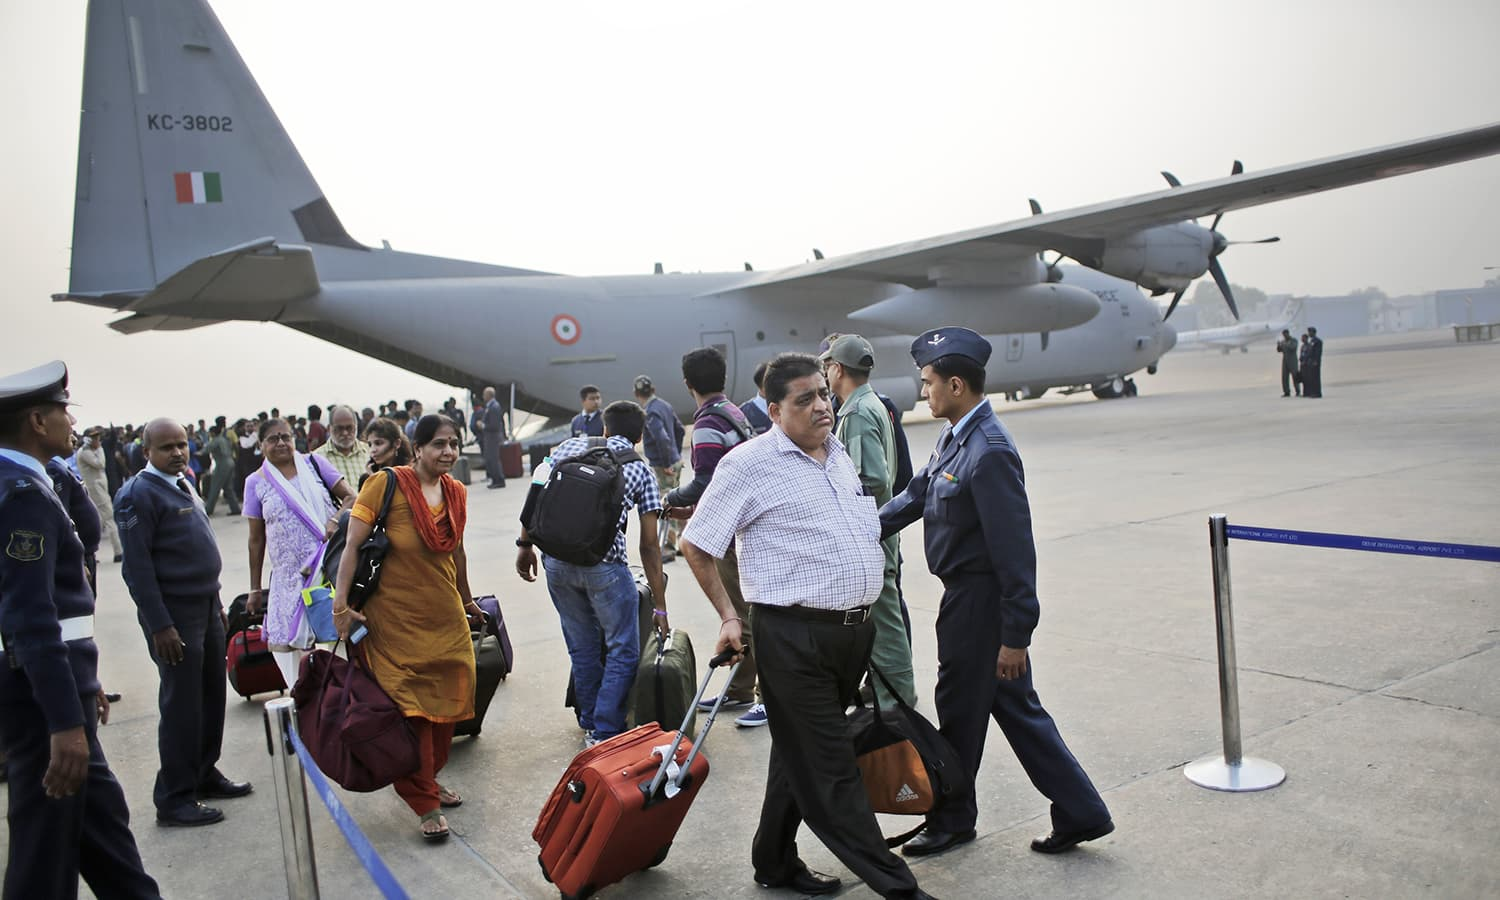 People who were stranded in Chennai due to floods arrive in New Delhi after being evacuated by Indian Air Force, in New Delhi, India, Thursday, Dec. 3, 2015. — AP